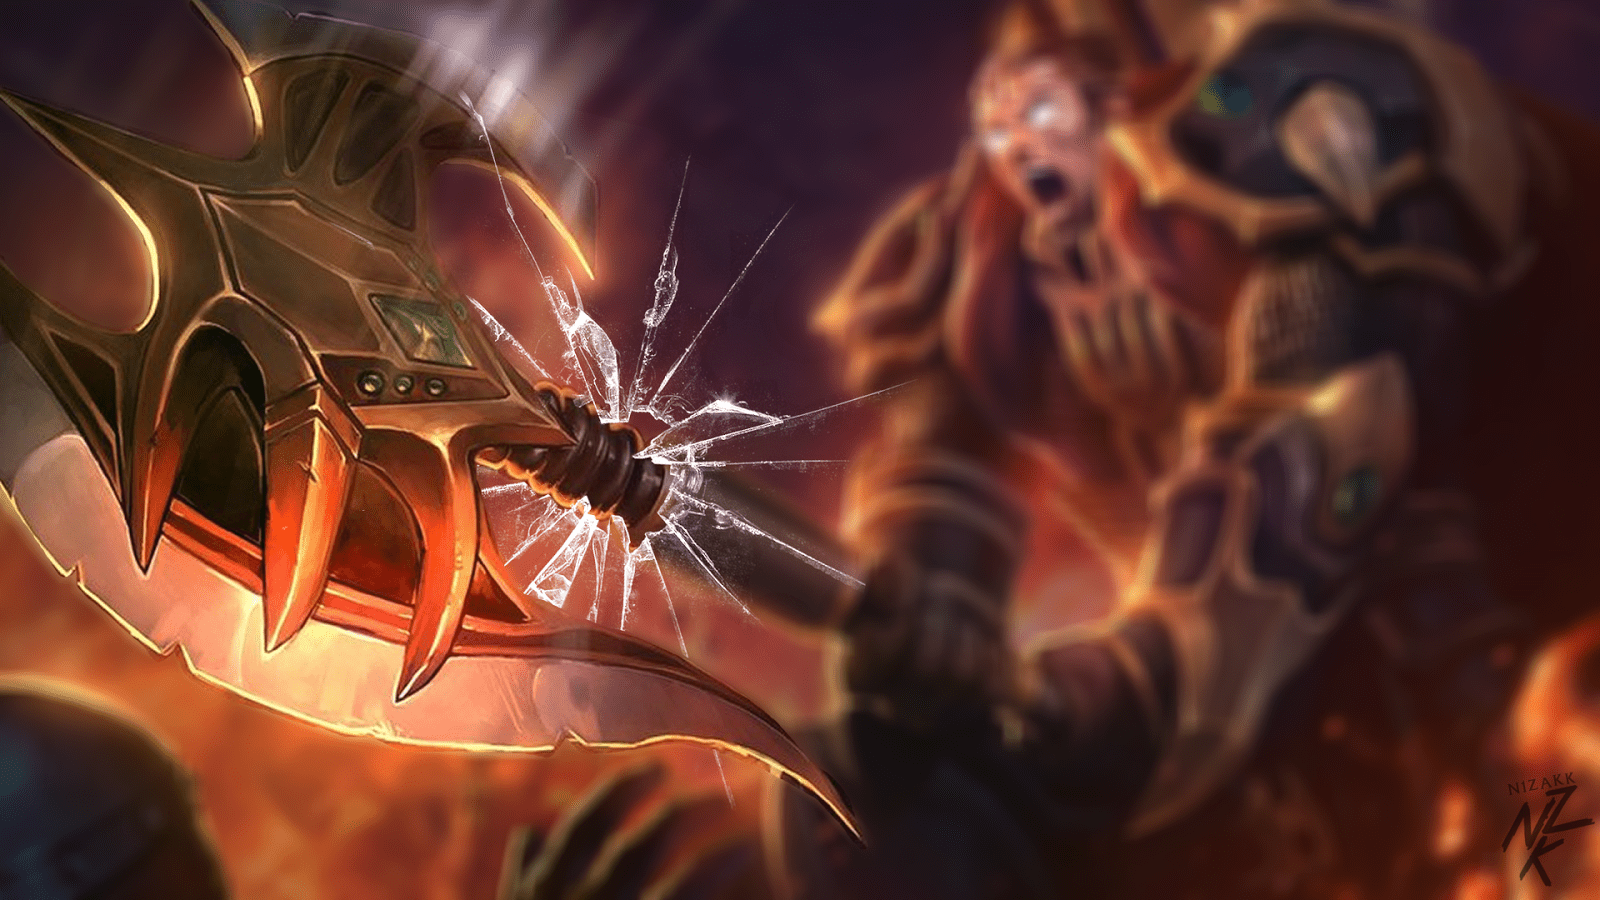 Iphone 5 Cracked Screen Wallpaper Download League Of Legends Live Wallpaper For Pc Gallery